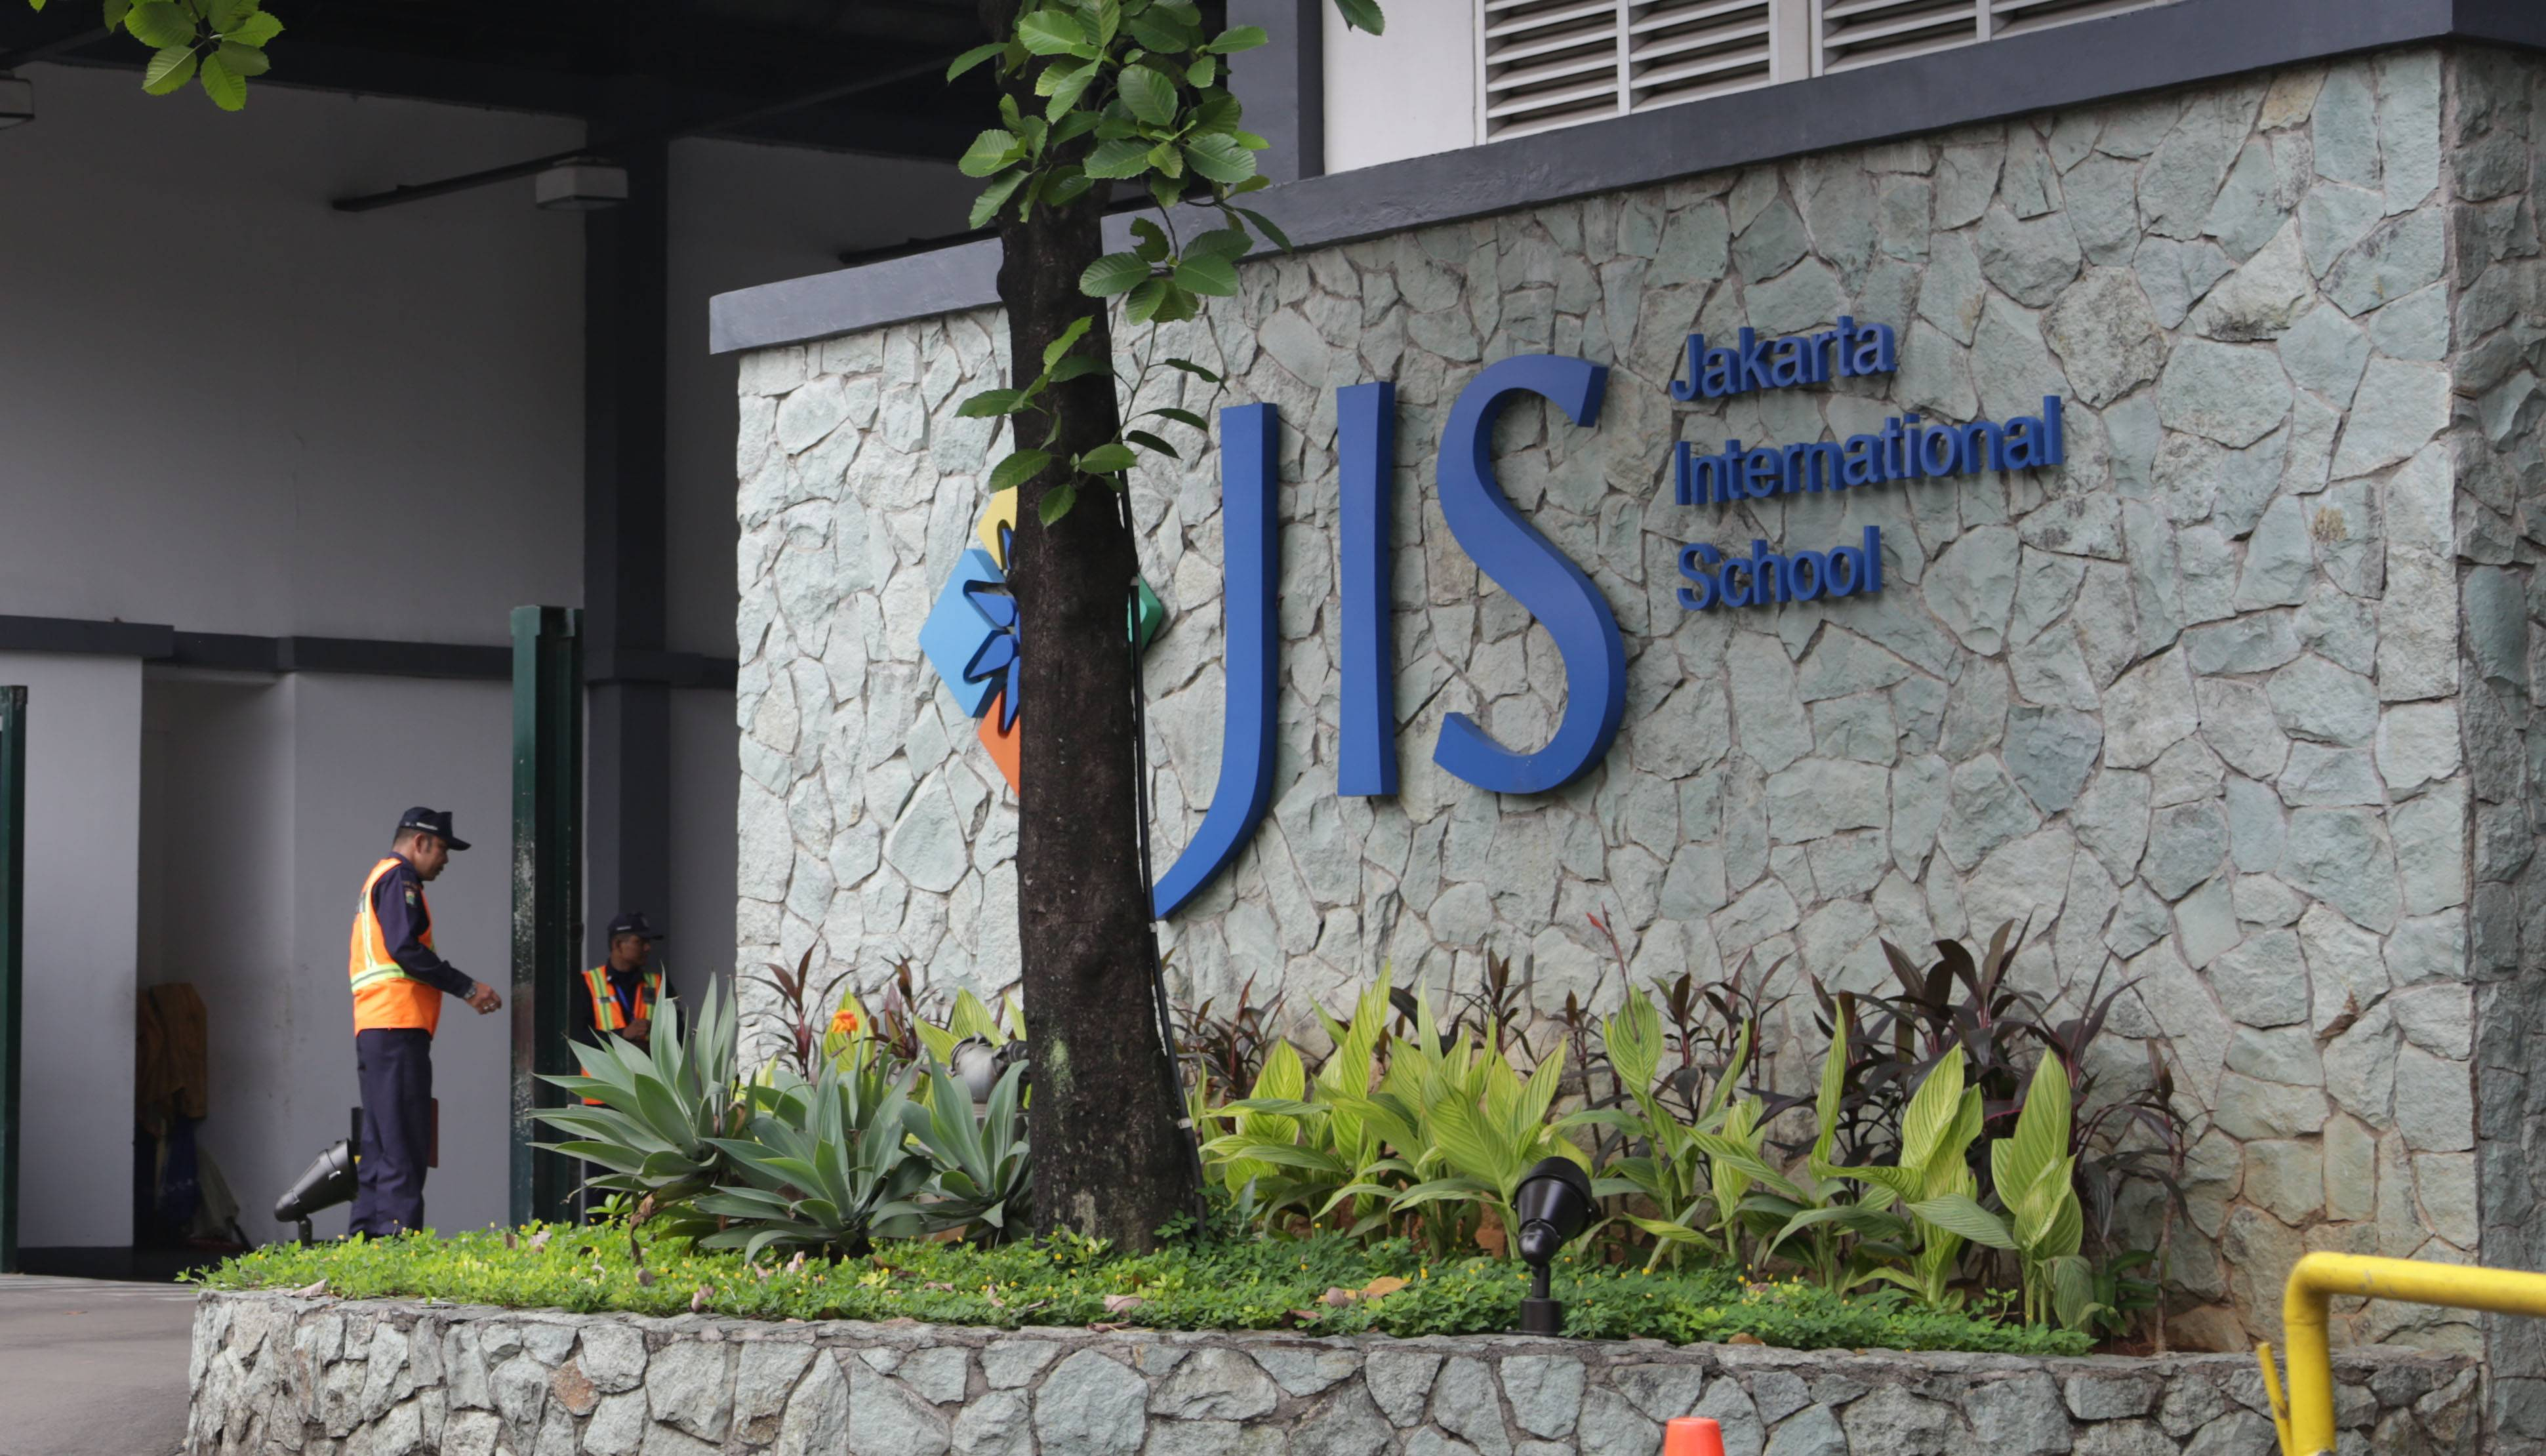 Jakarta International School (JIS) compound in Jakarta, Indonesia. U.S. citizen William Vahey taught here from 1992-2002.